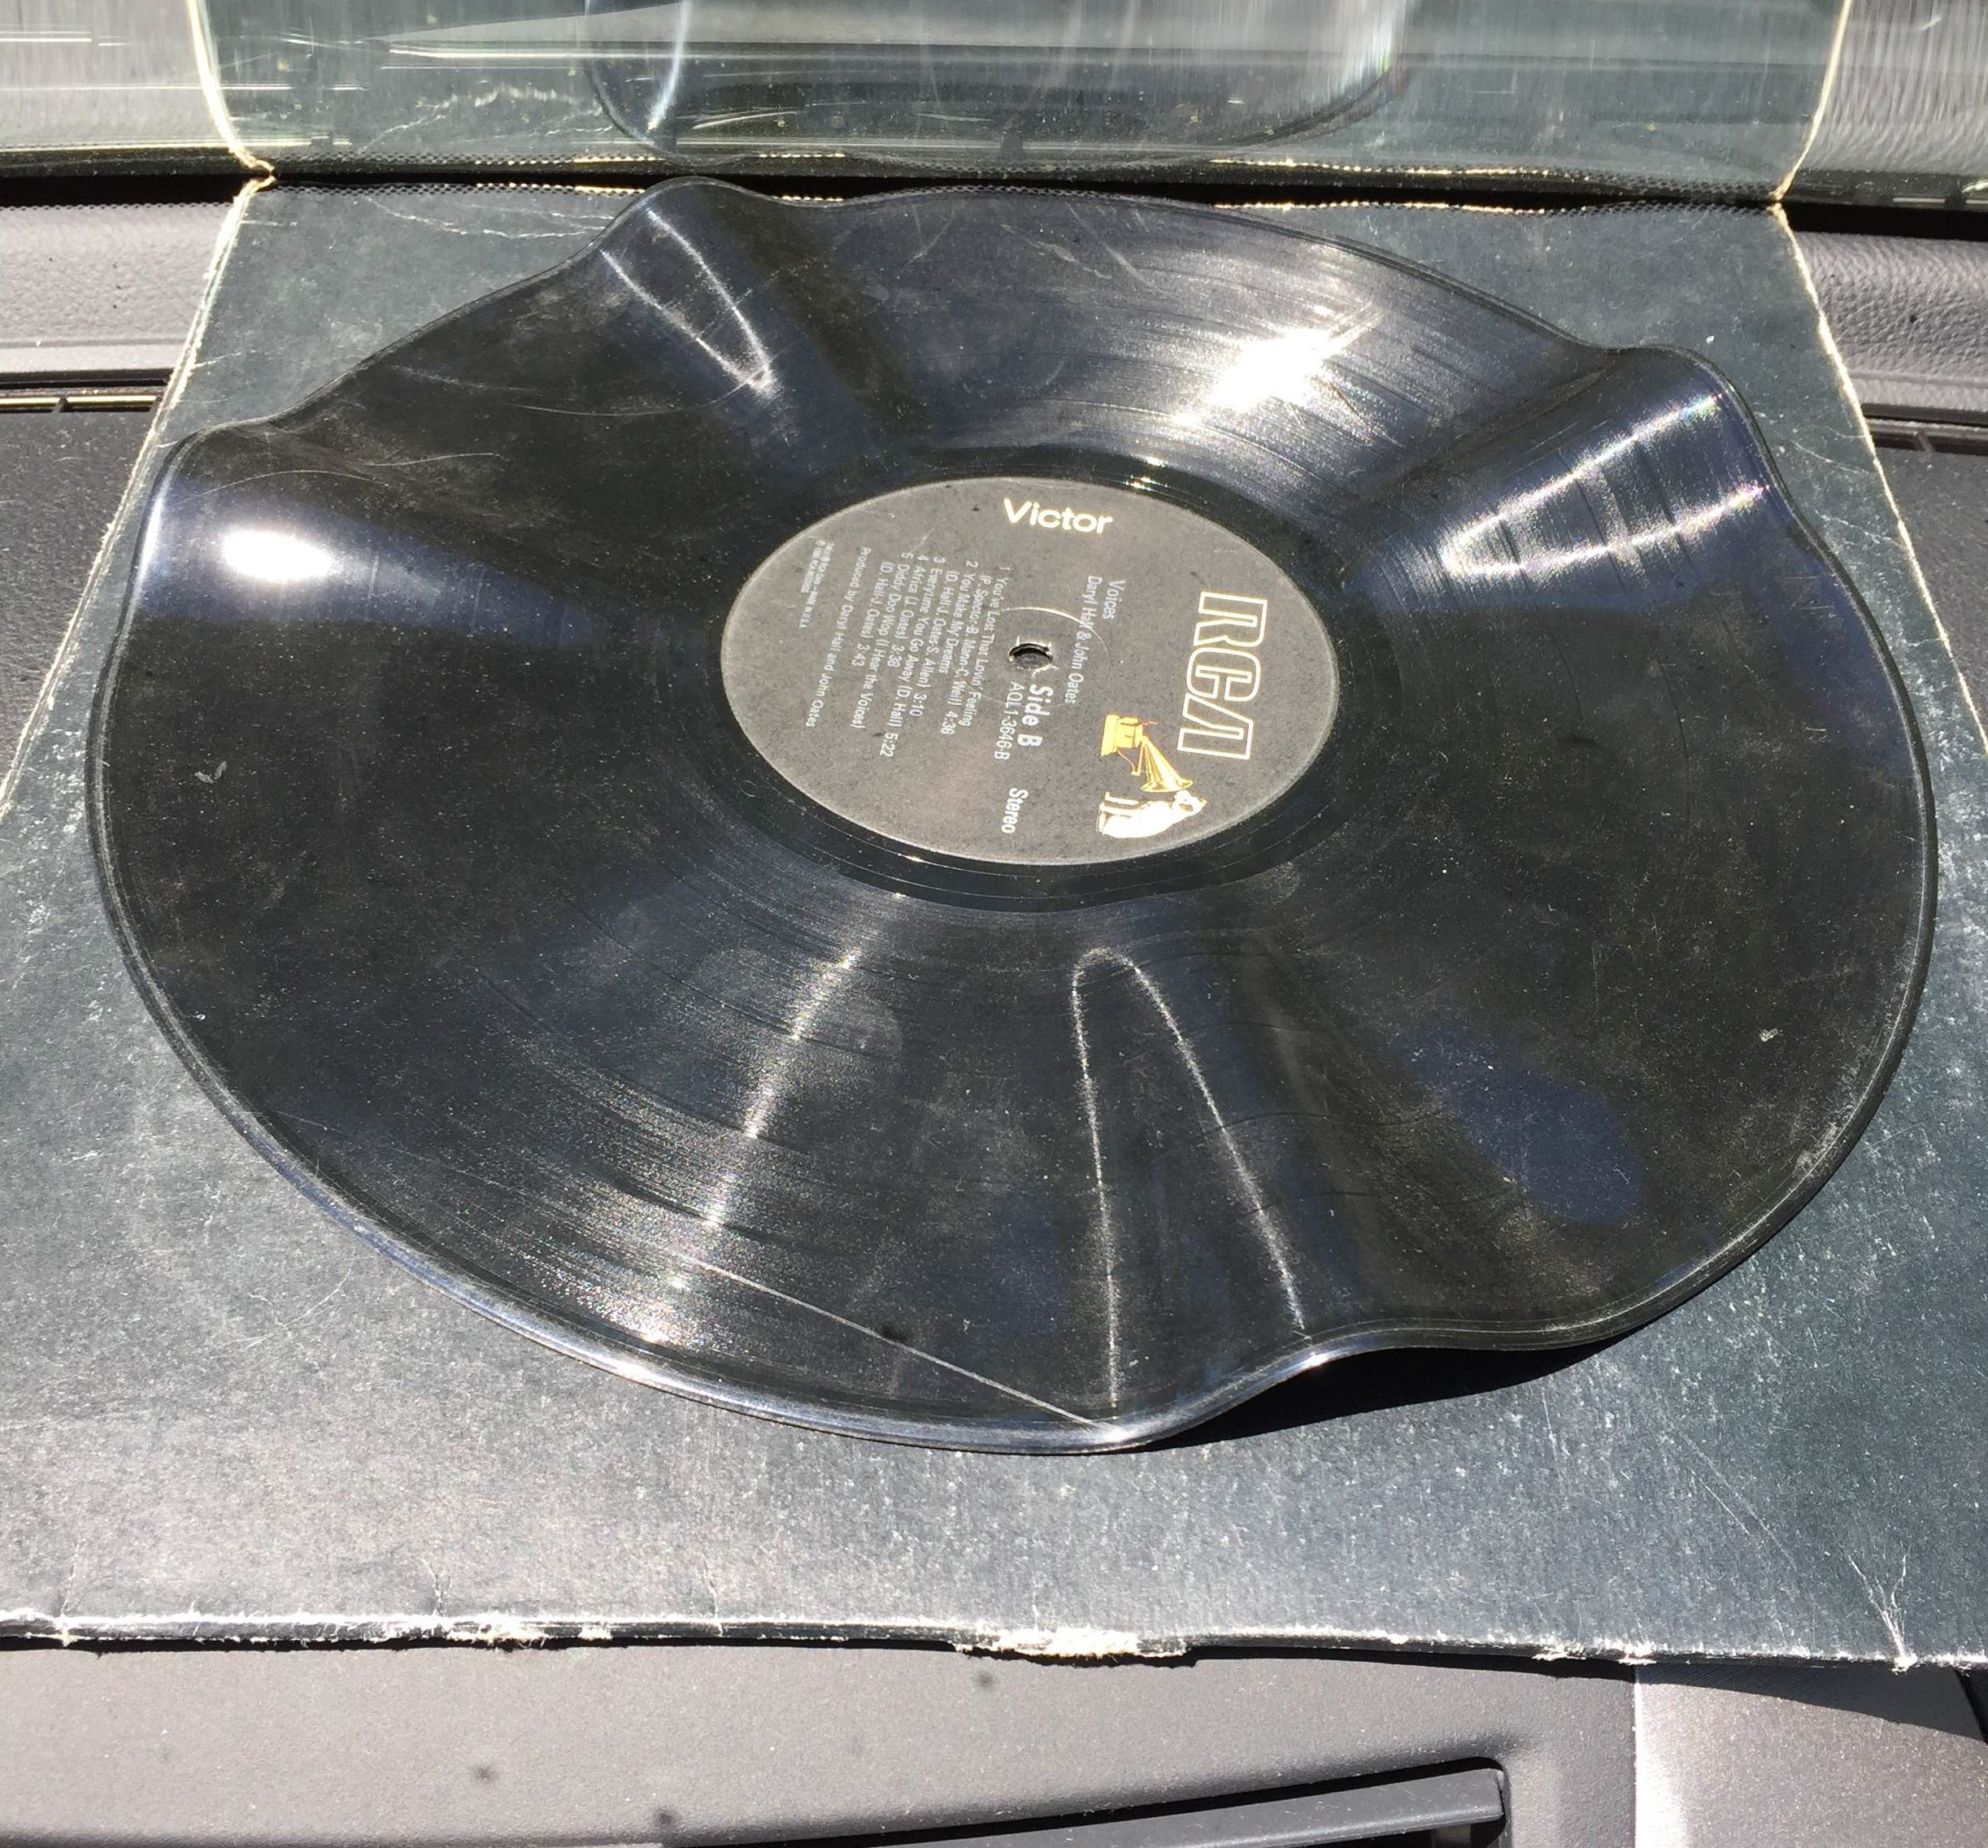 Vinyl Record Warped After 20 Minutes in Sun